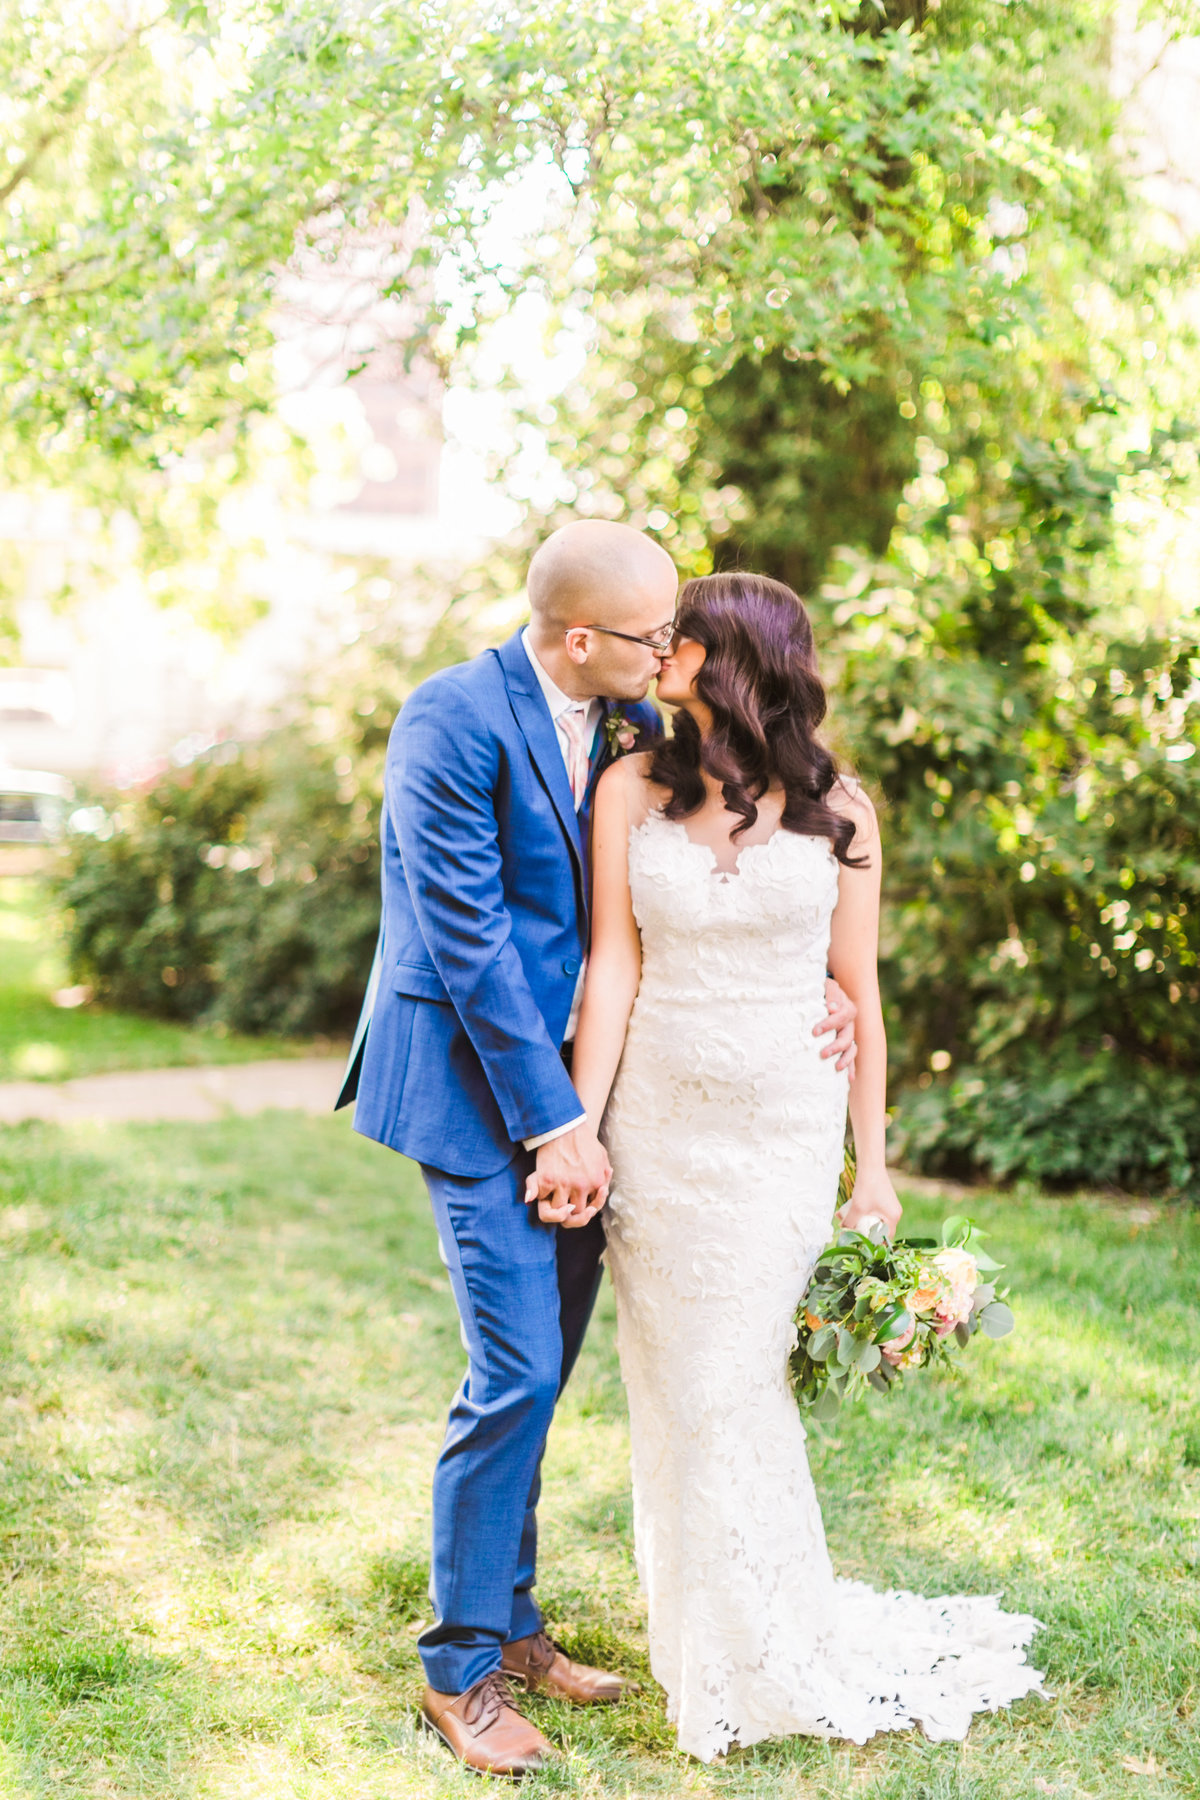 TheSimpsonHouseWedding_MariamDoug_CatherineRhodesPhotography-11